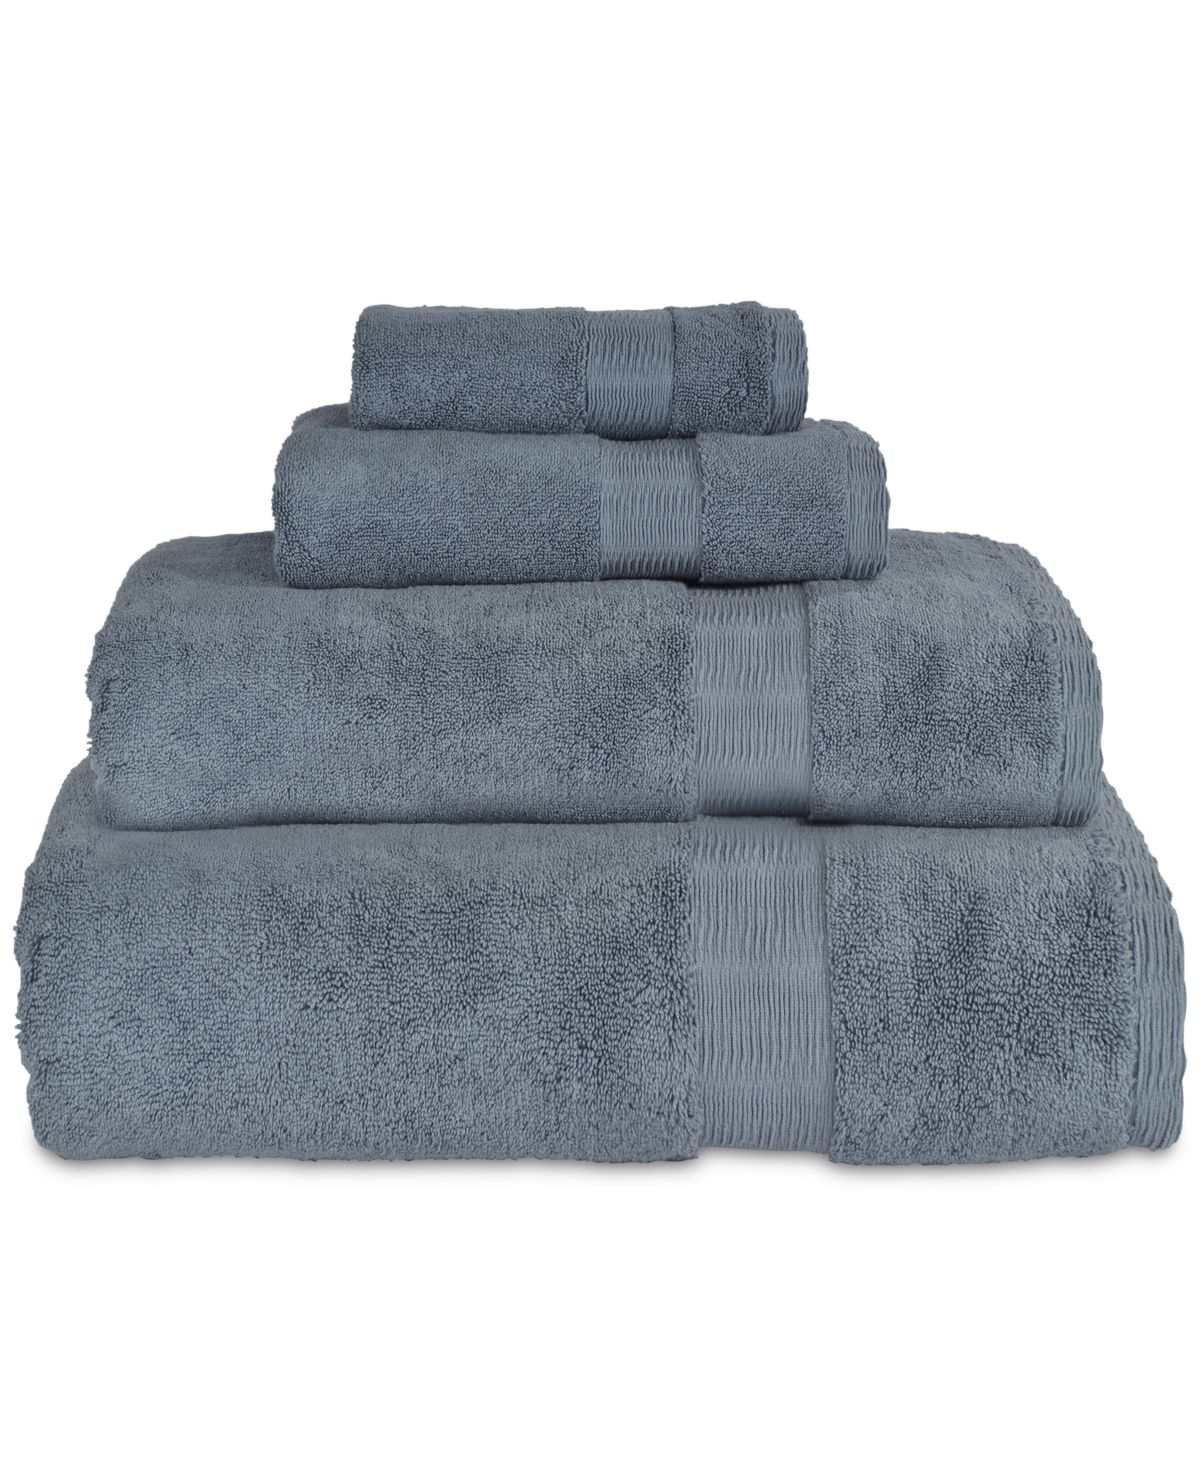 Dkny Mercer 100 Cotton Towel Collection Reviews Bath Towels